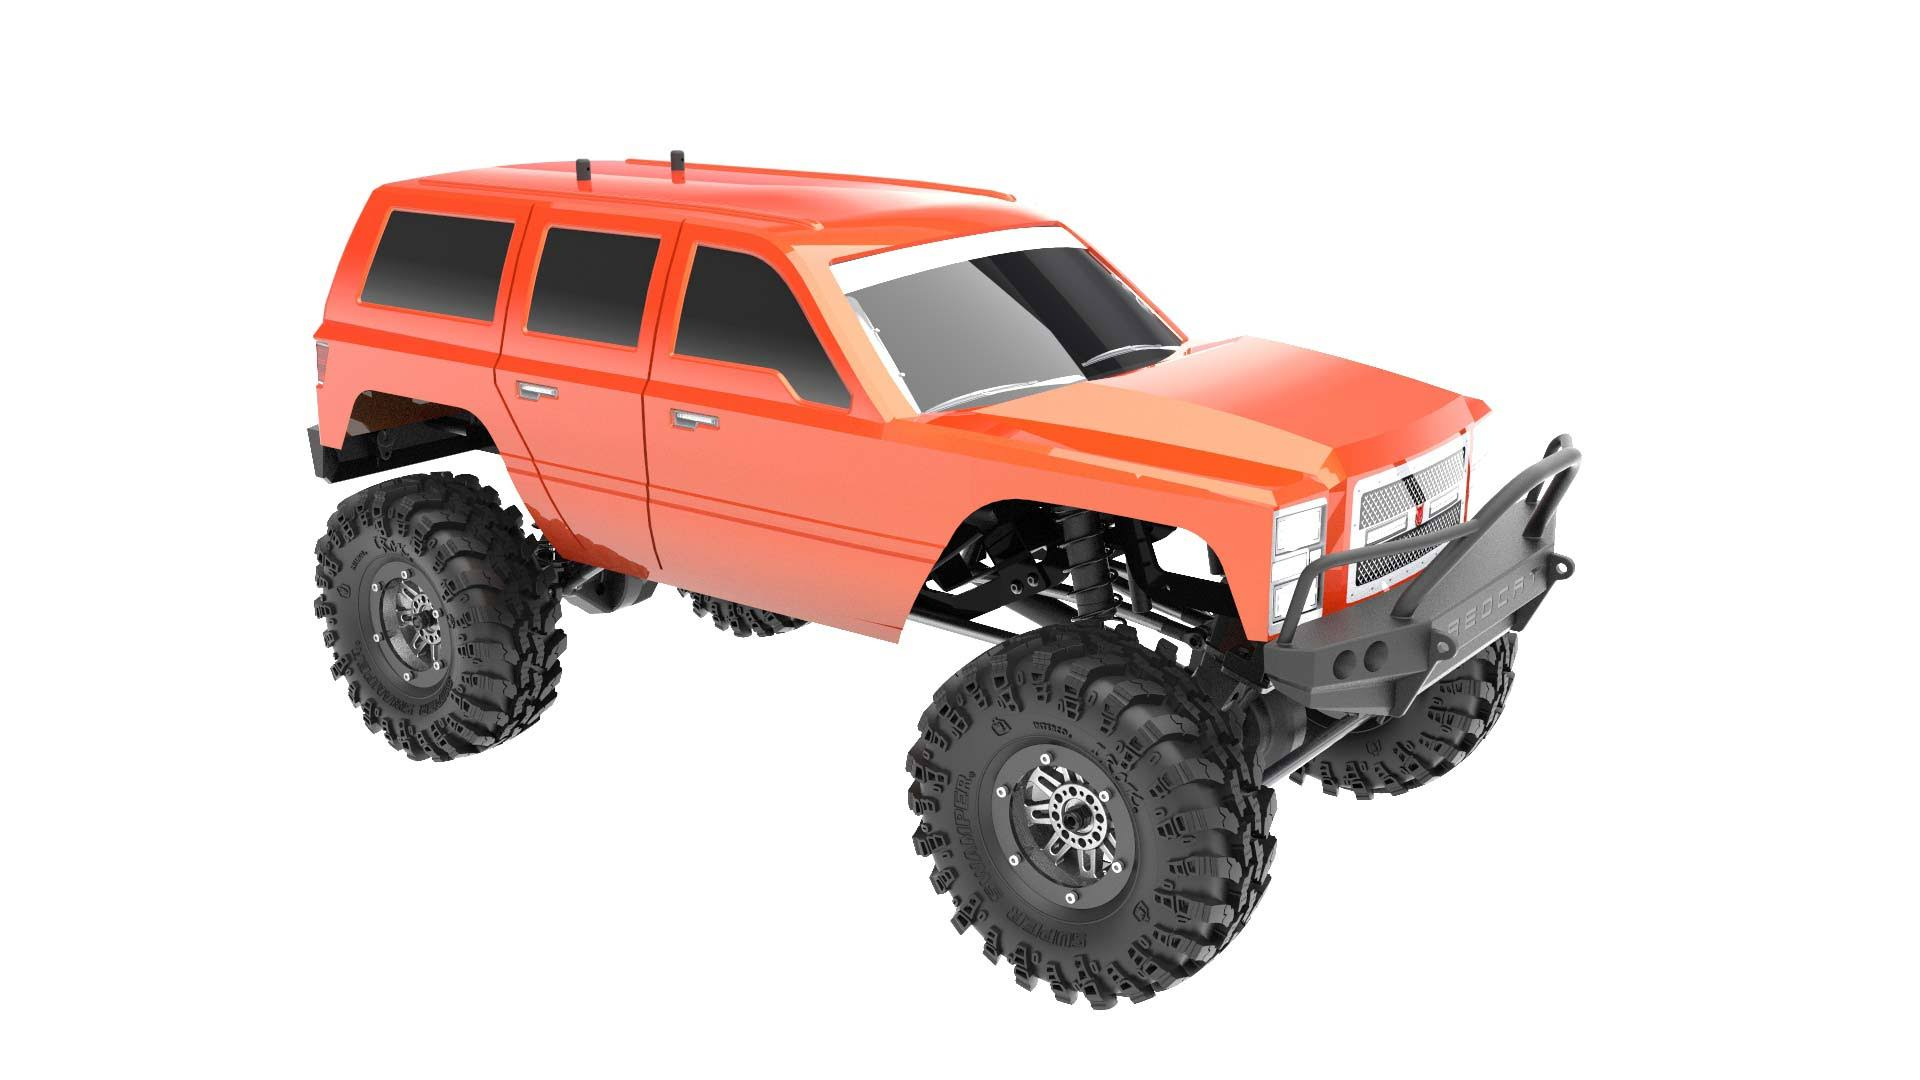 Redcat Racing 1:10 Everest Gen7 Sport 4wd Crawler Brushed RTR Model Kit - Burnt Orange